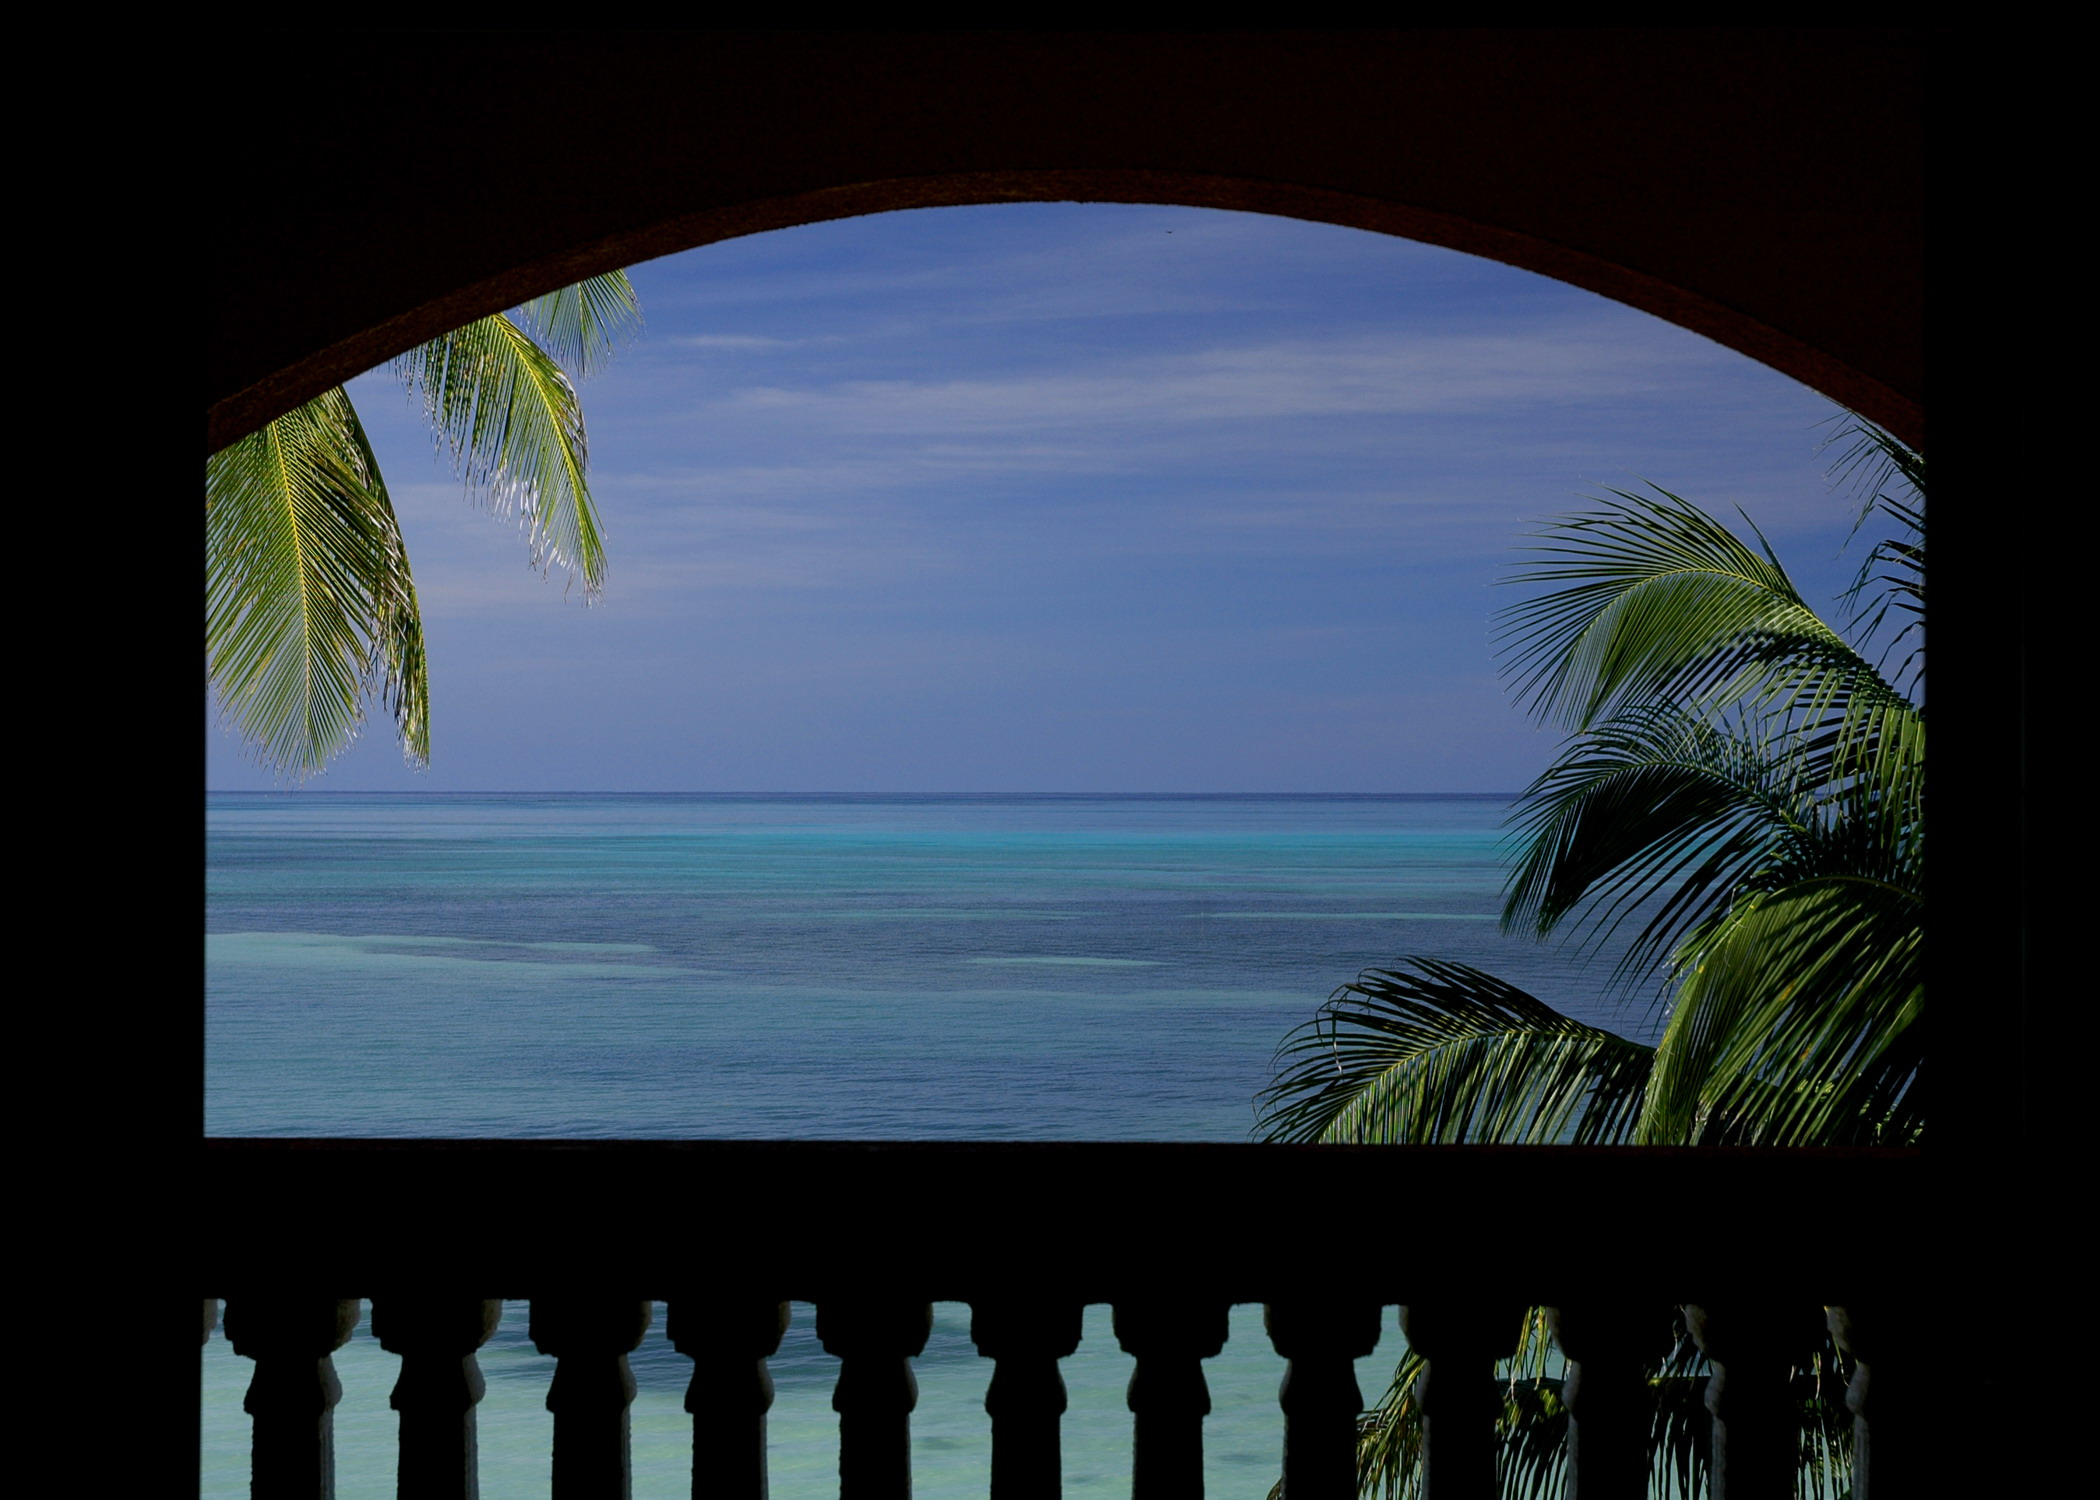 Hotel View (Ambergris Caye)